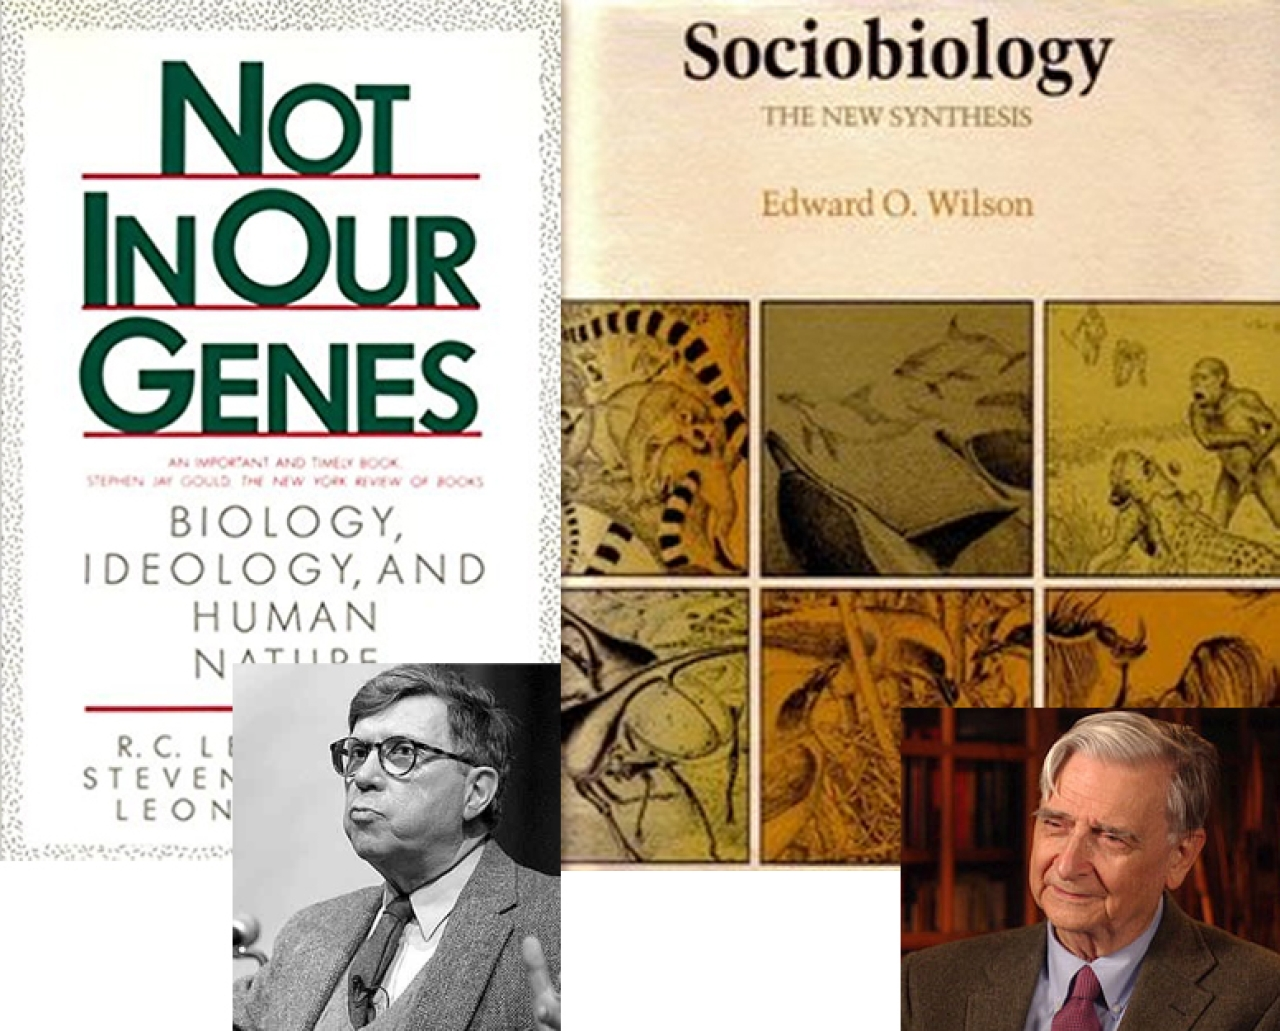 Ideological war on biology: Lewontin (left) attacked sociobiology for political and ideological reasons. Biologist E.O.Wilson (right) was targeted.